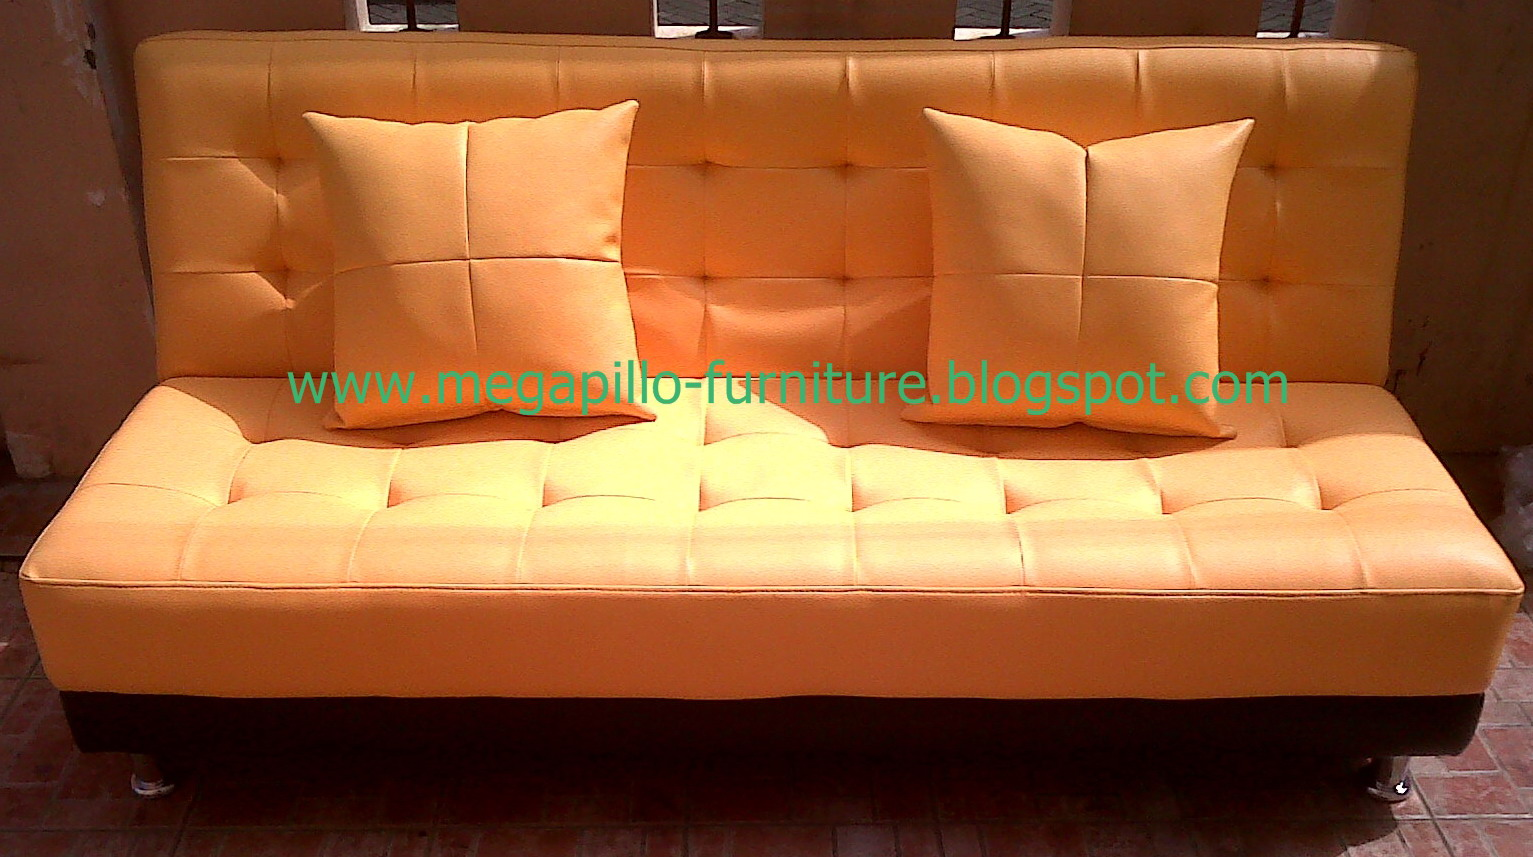 Megapillo Furniture Spring Bed Online Shop Sofa Bed Lipat